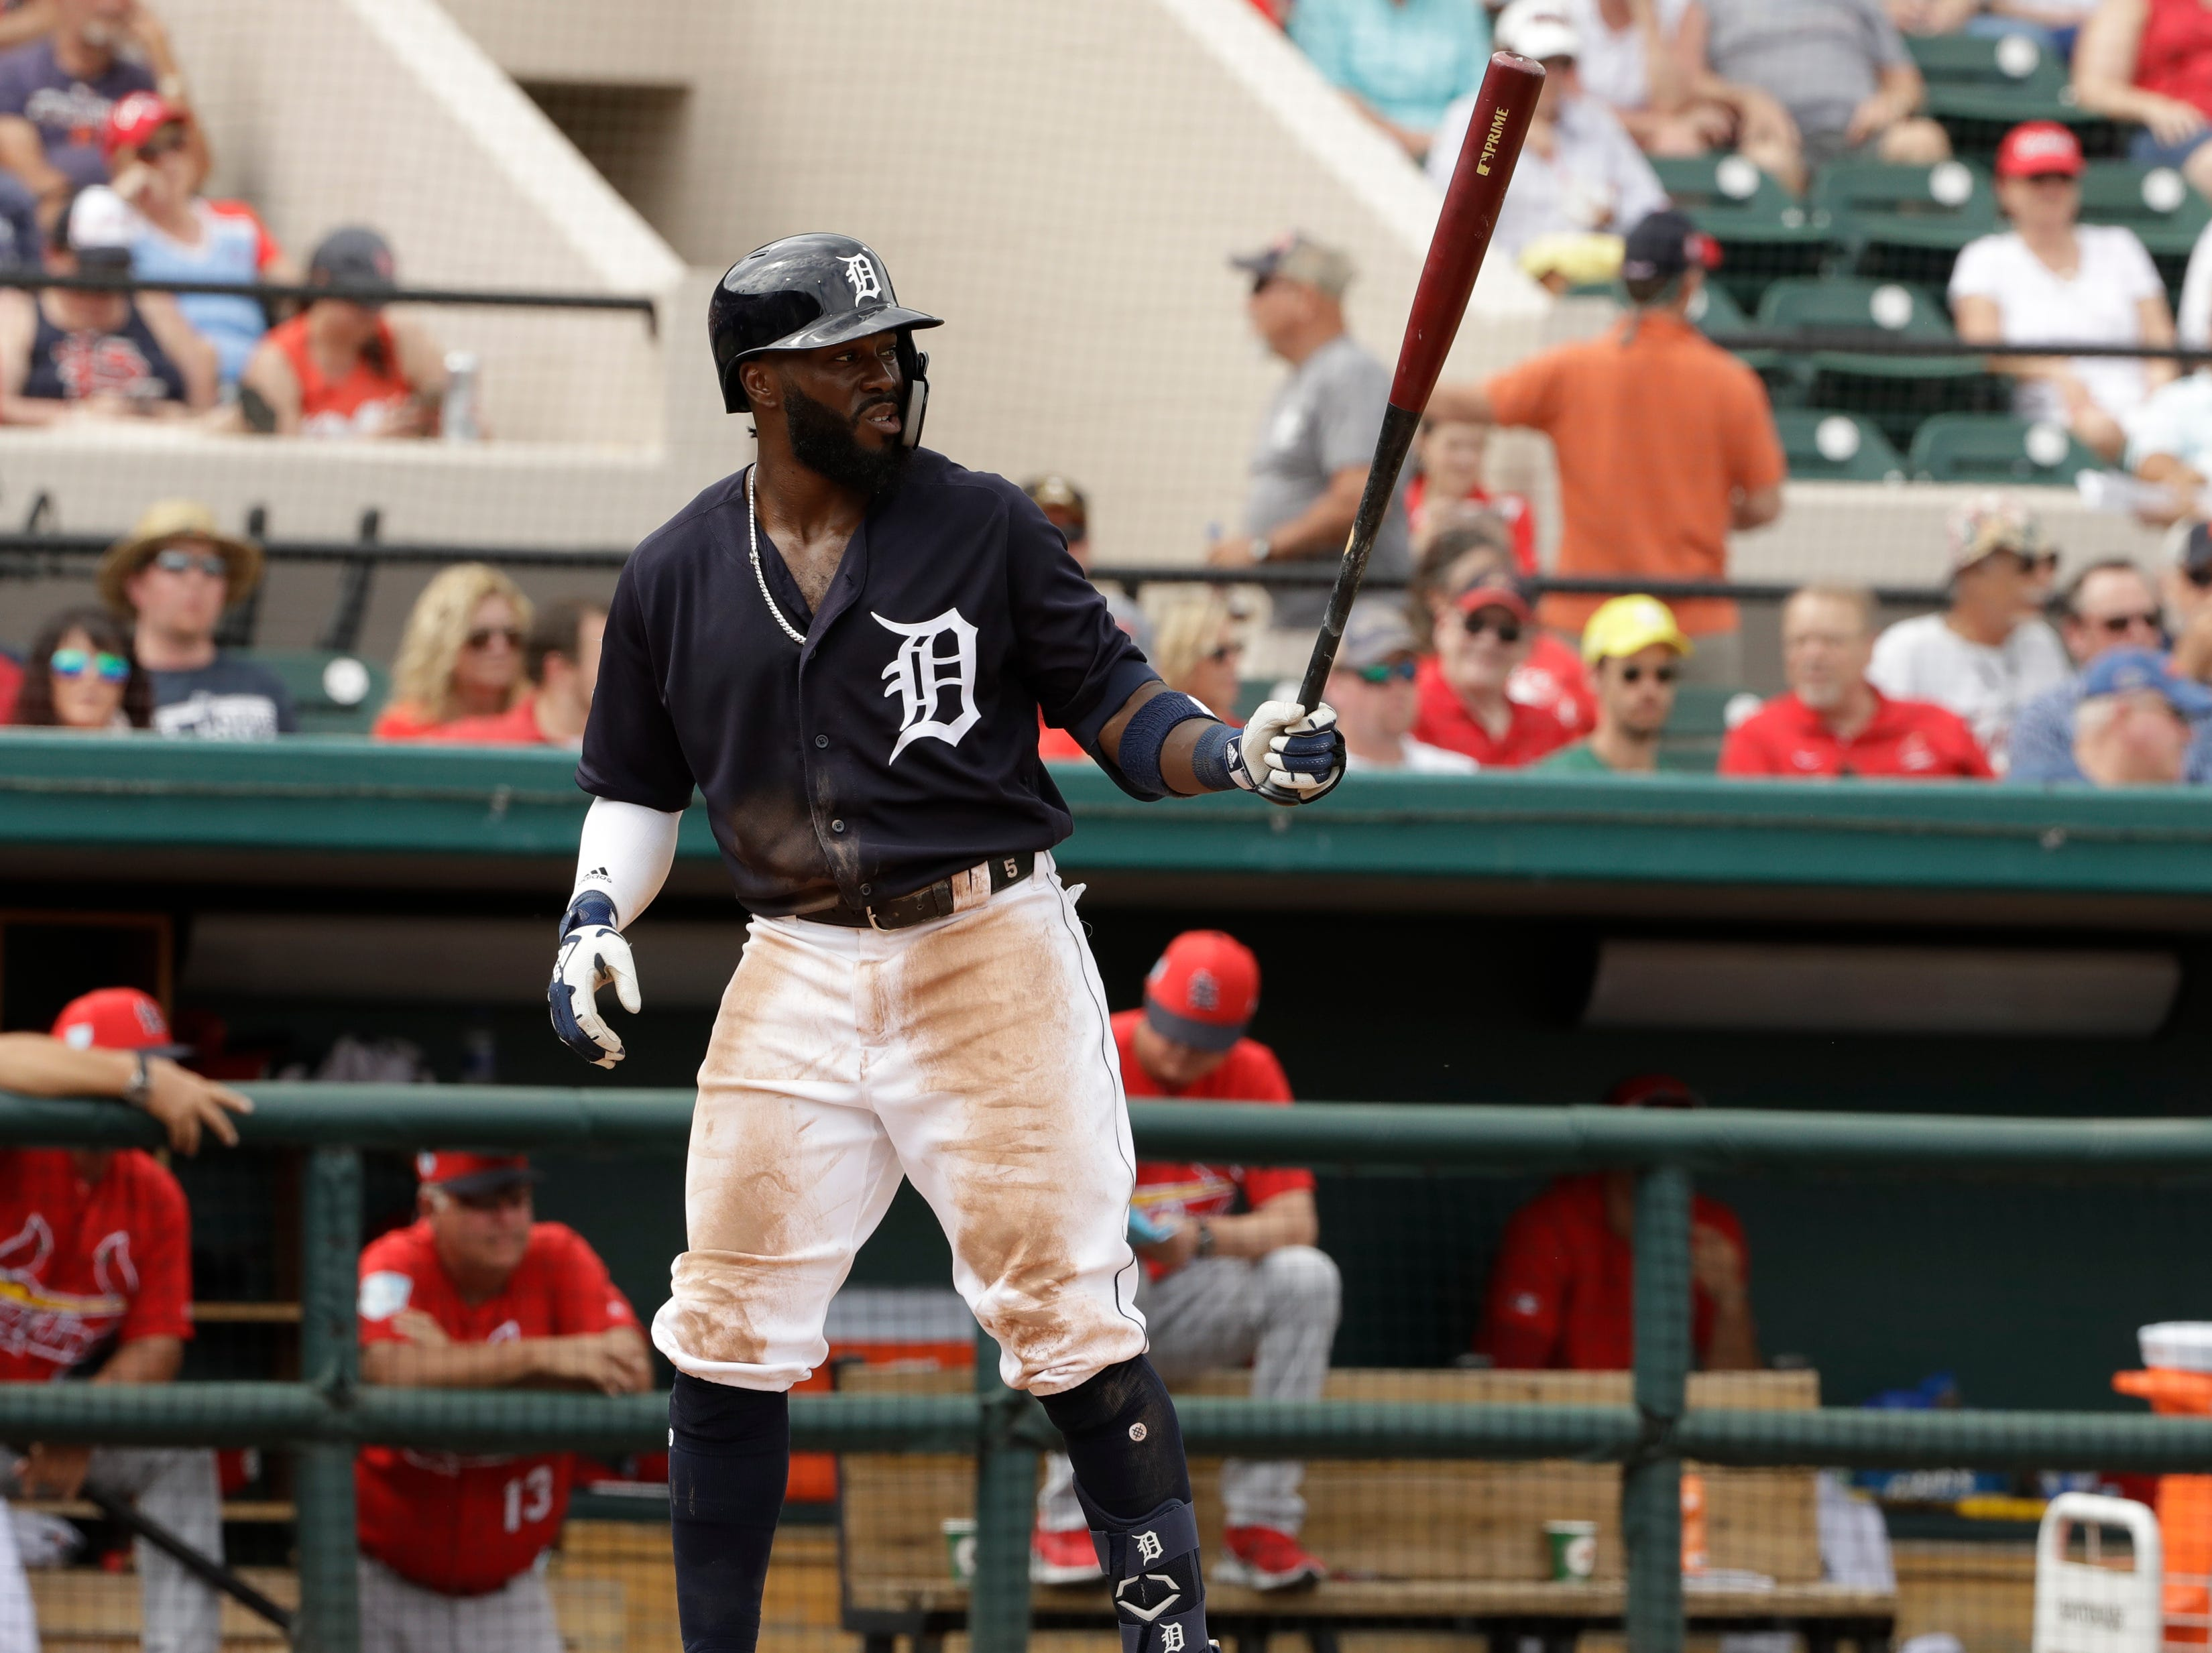 Detroit Tigers' Josh Harrison bats against the St. Louis Cardinals during the third inning.